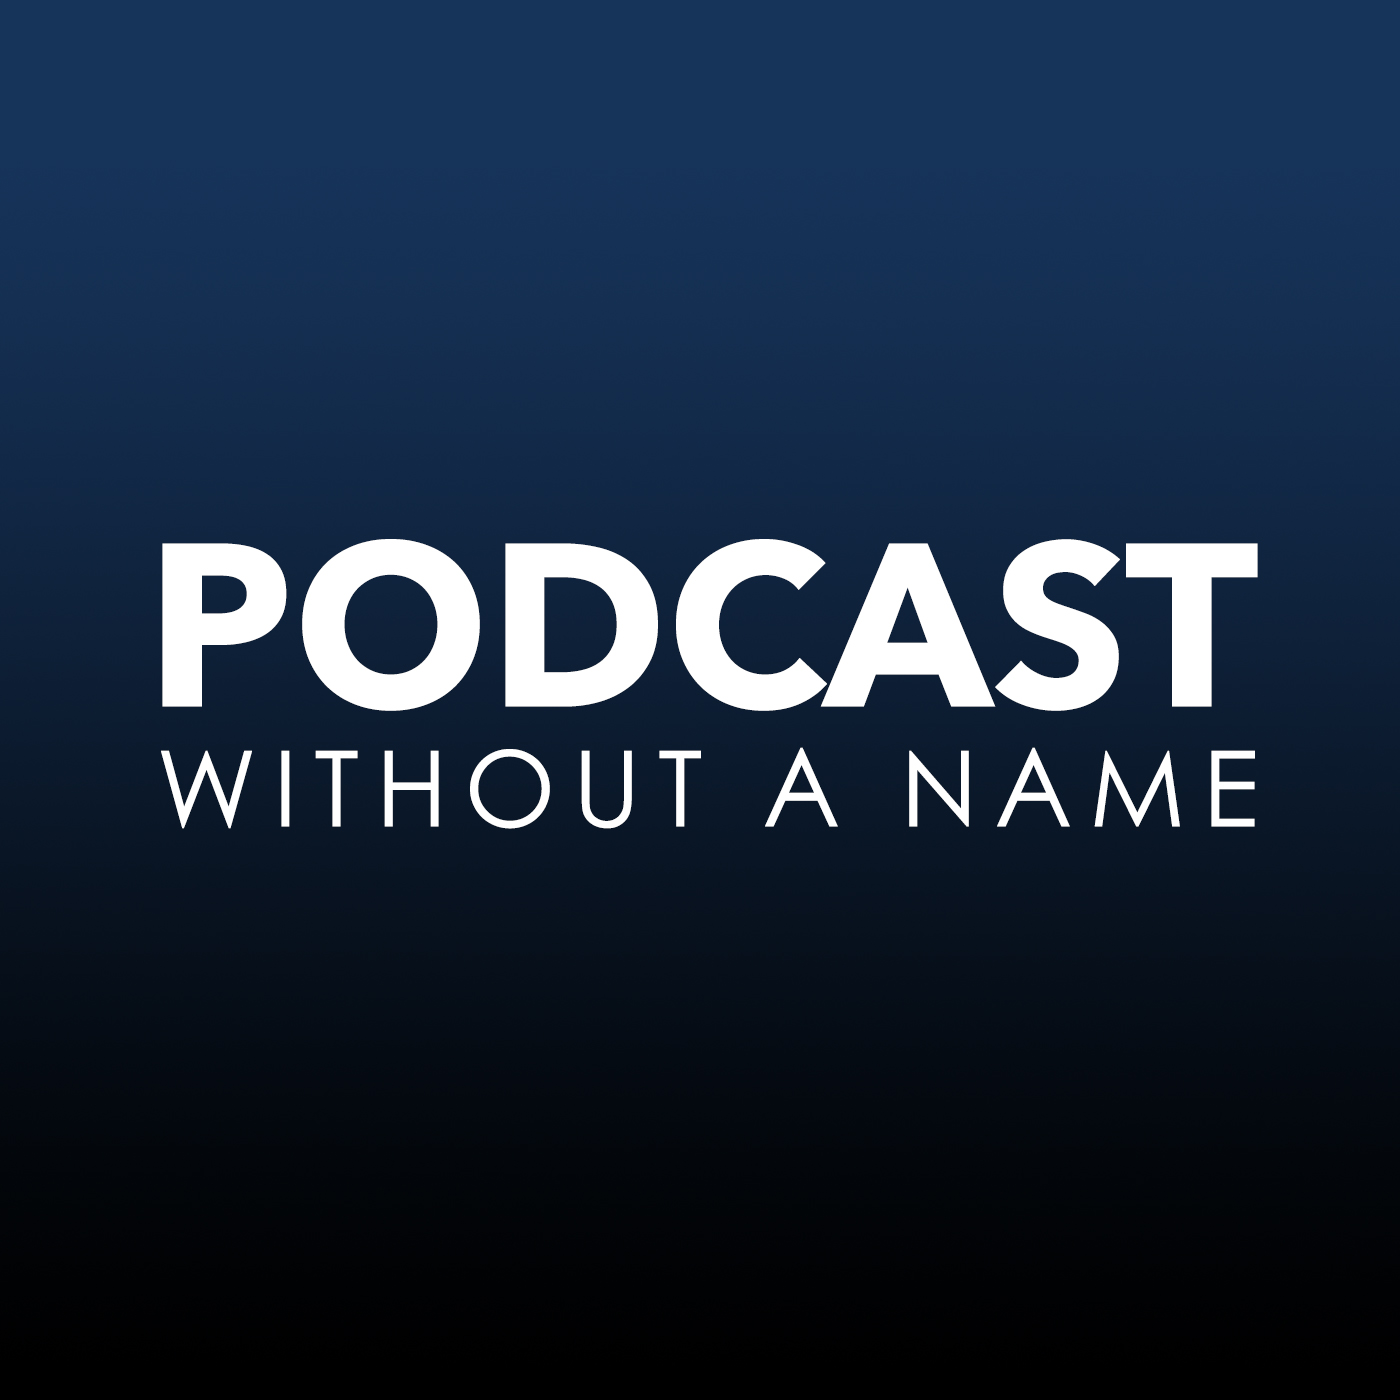 Podcast Without A Name